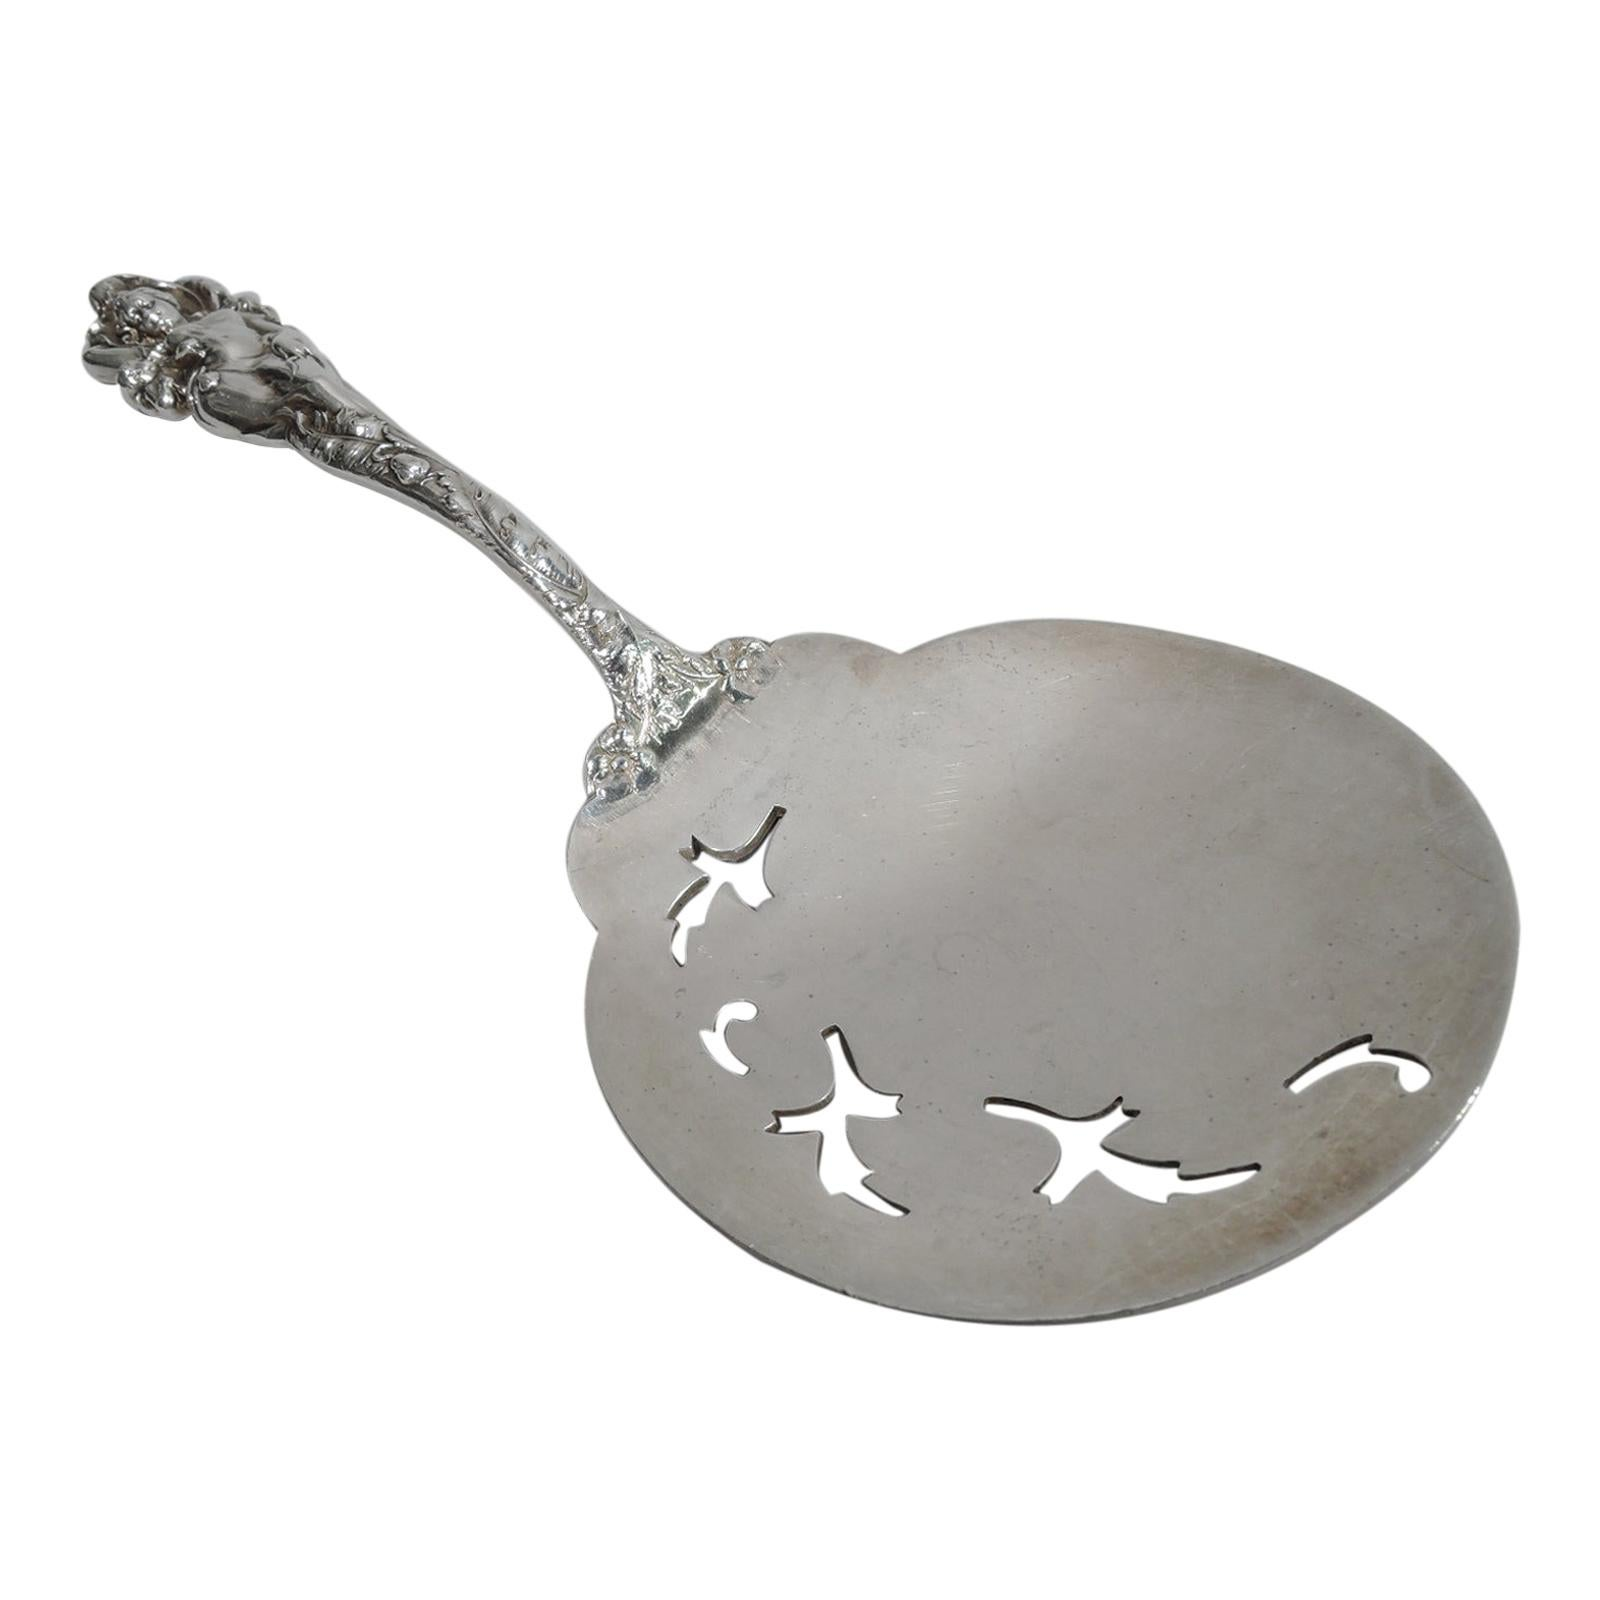 Antique Reed & Barton Love Disarmed Sterling Silver Tomato Server